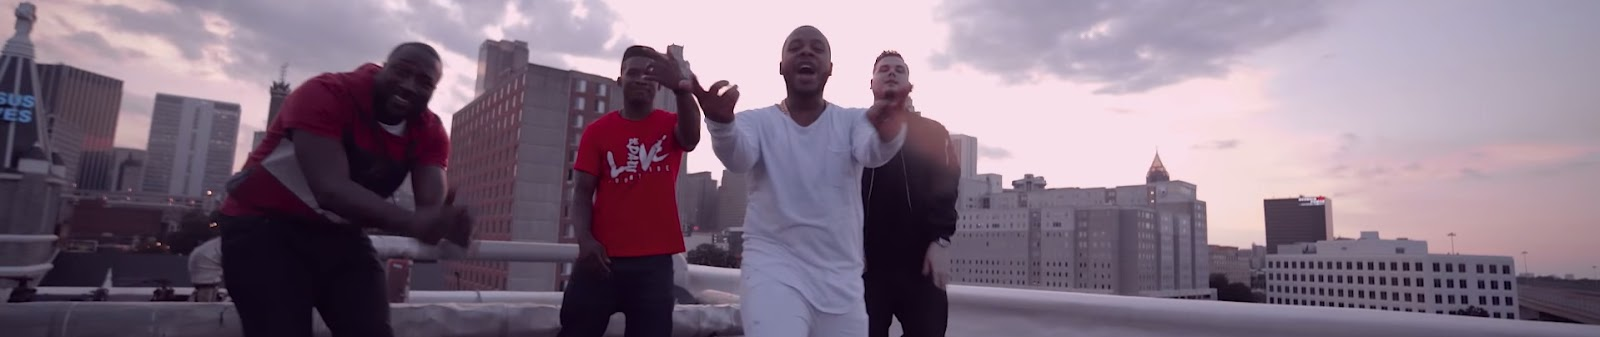 WLAK - Too Easy - 2015 single music video